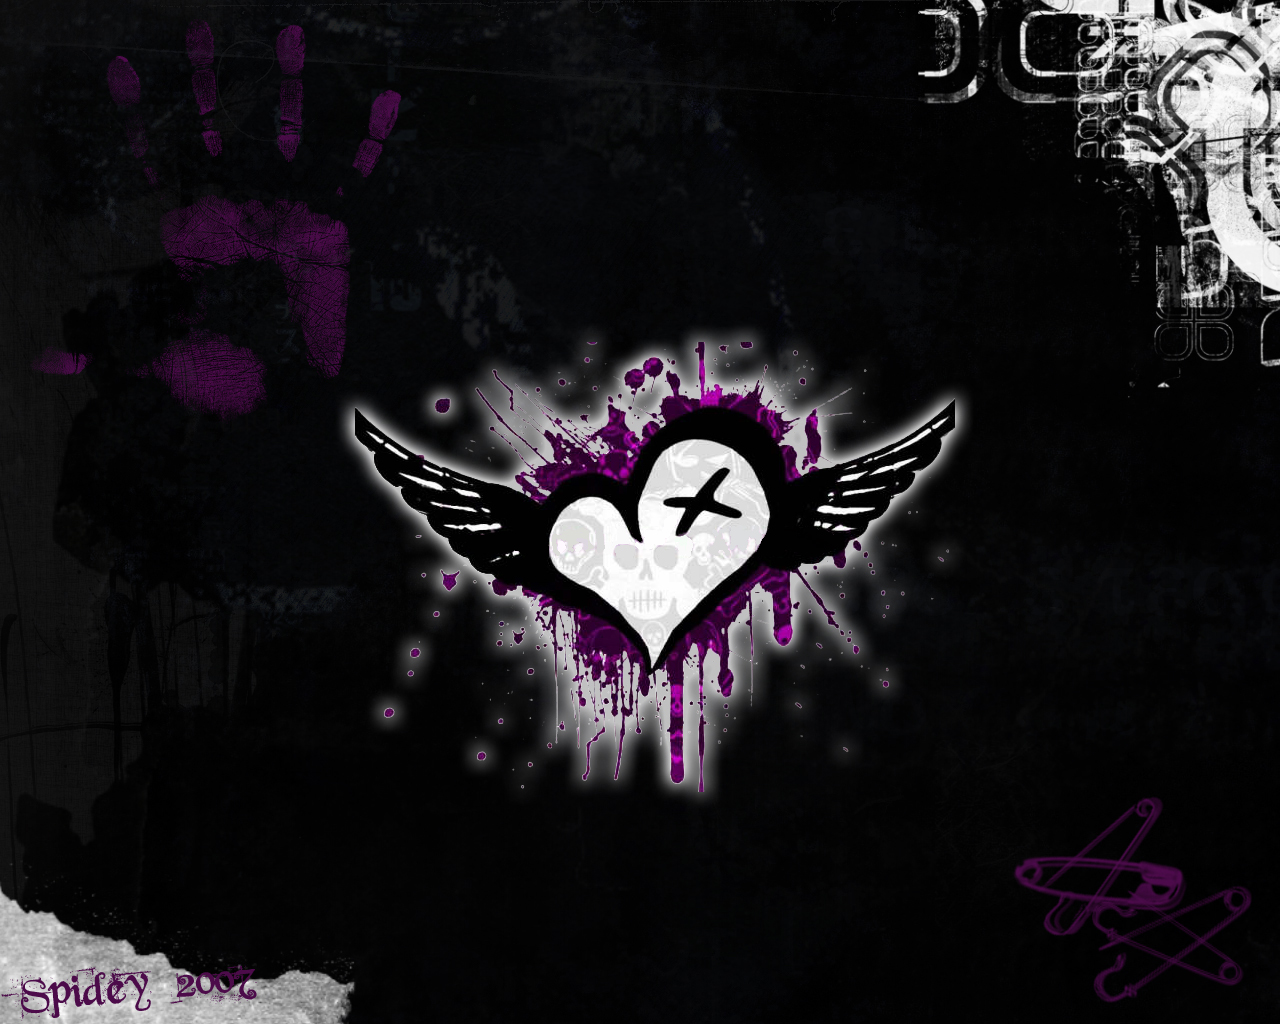 Emo Love Wallpaper In Hd : See To World: 07/27/11